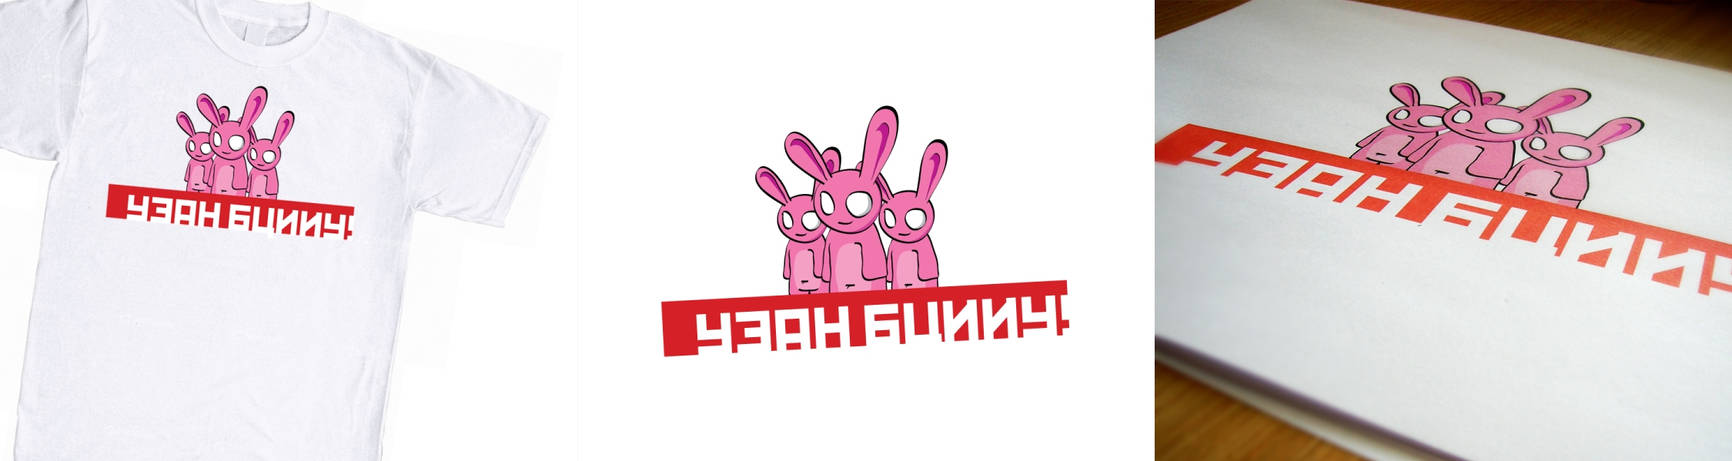 yeah bunny t-shirt by qedar